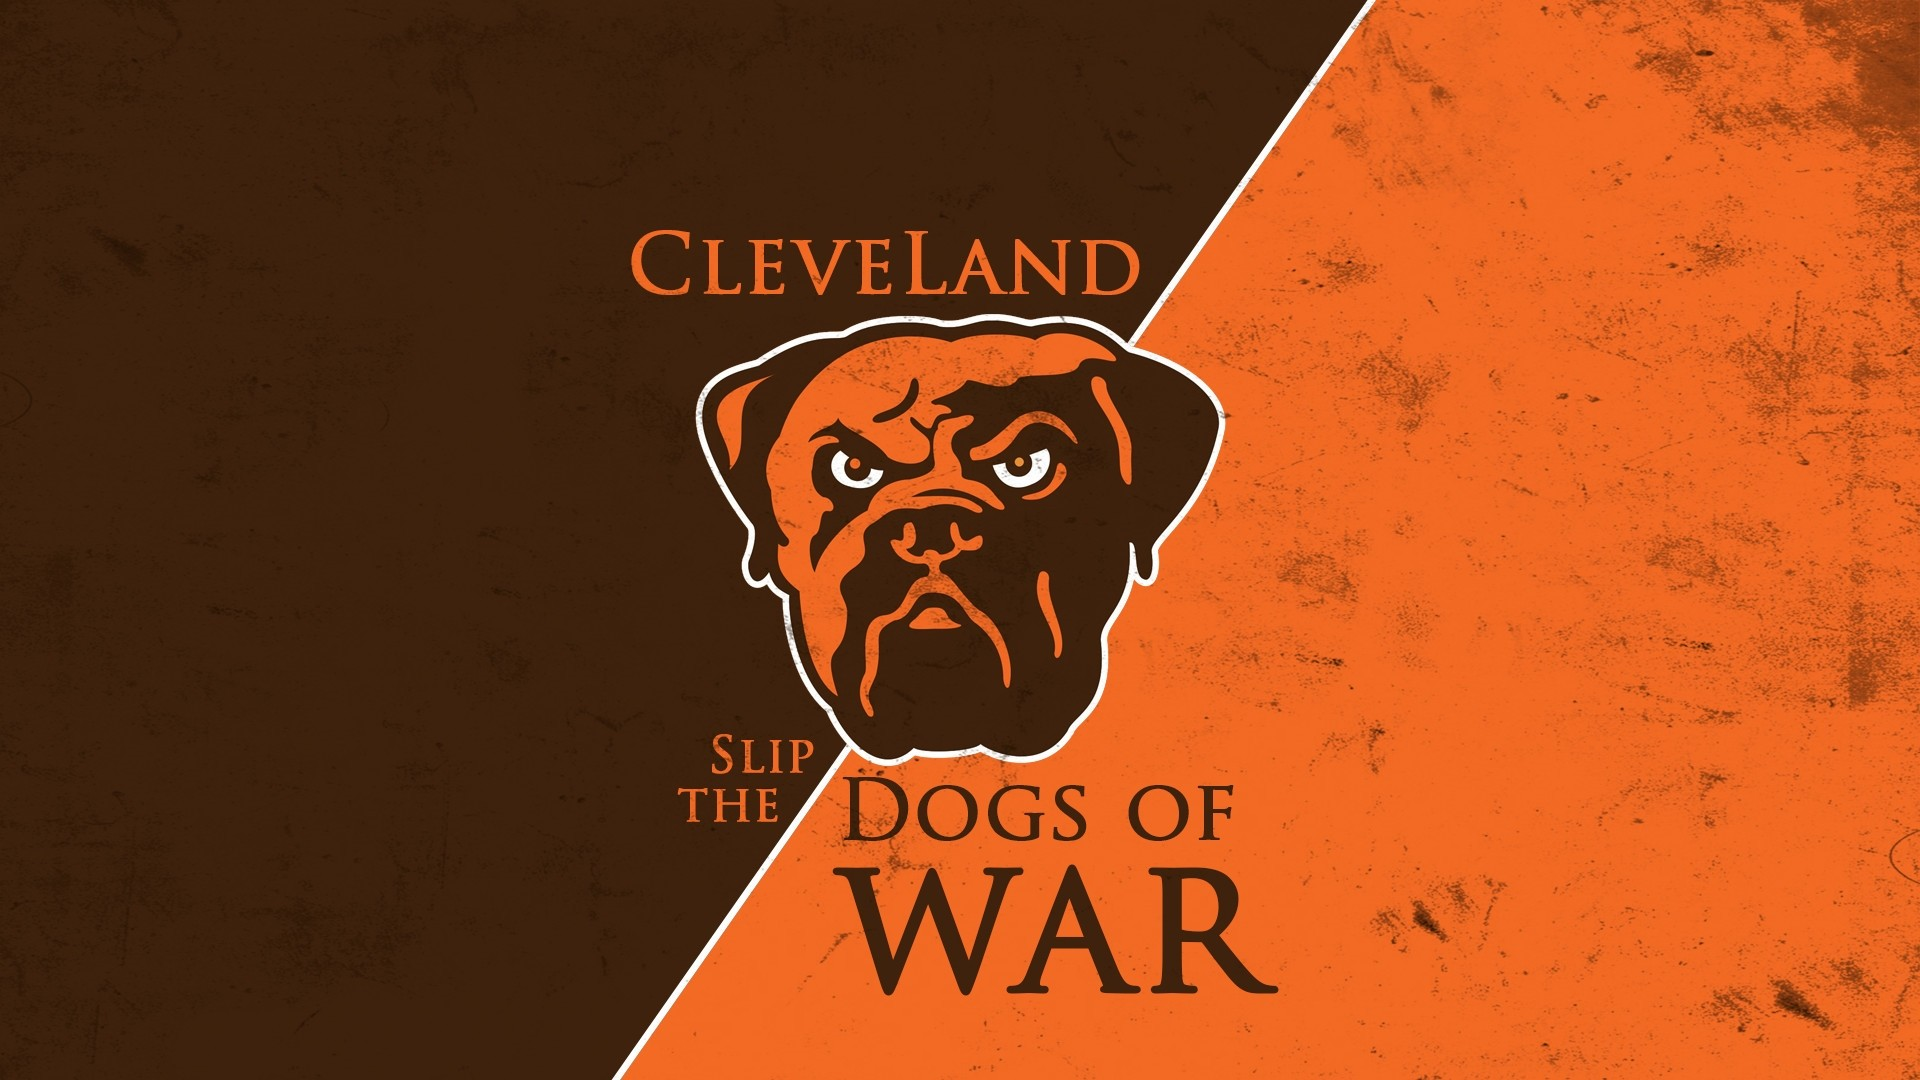 … cleveland browns wallpaper best images collections hd for gadget …